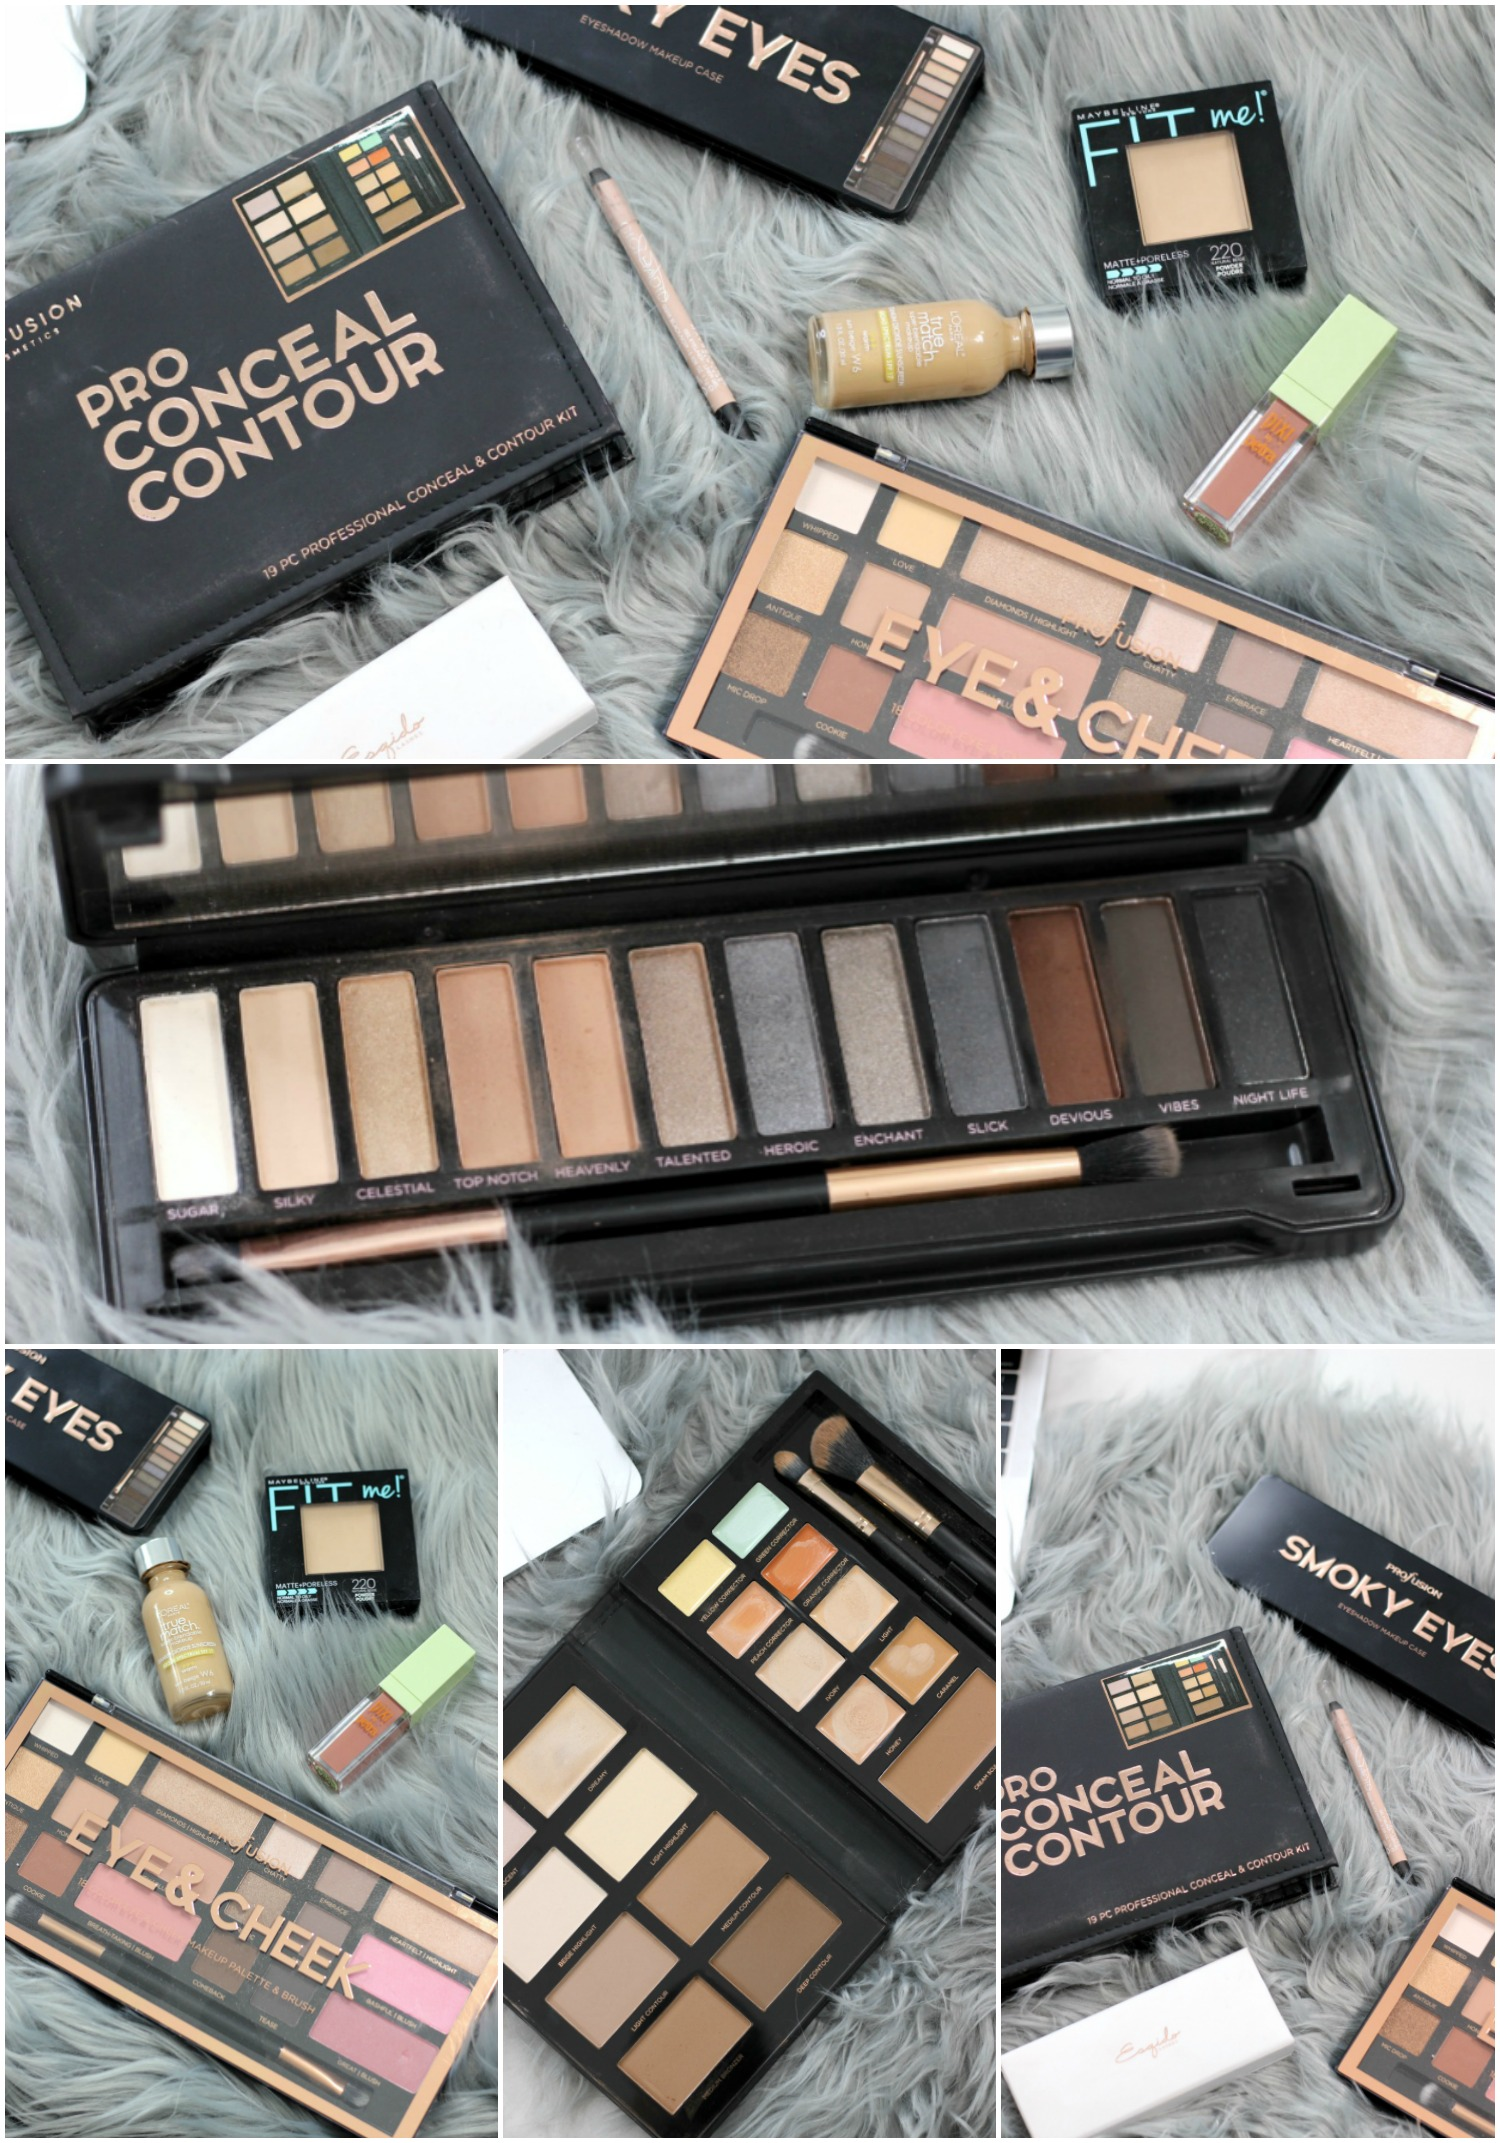 Profusion Cosmetics Eye and Cheek Palette, Profusion Cosmetics Pro Conceal Contour Kit, Profusion Cosmetics Smoky Eye Palette on Brighter Darling Blog